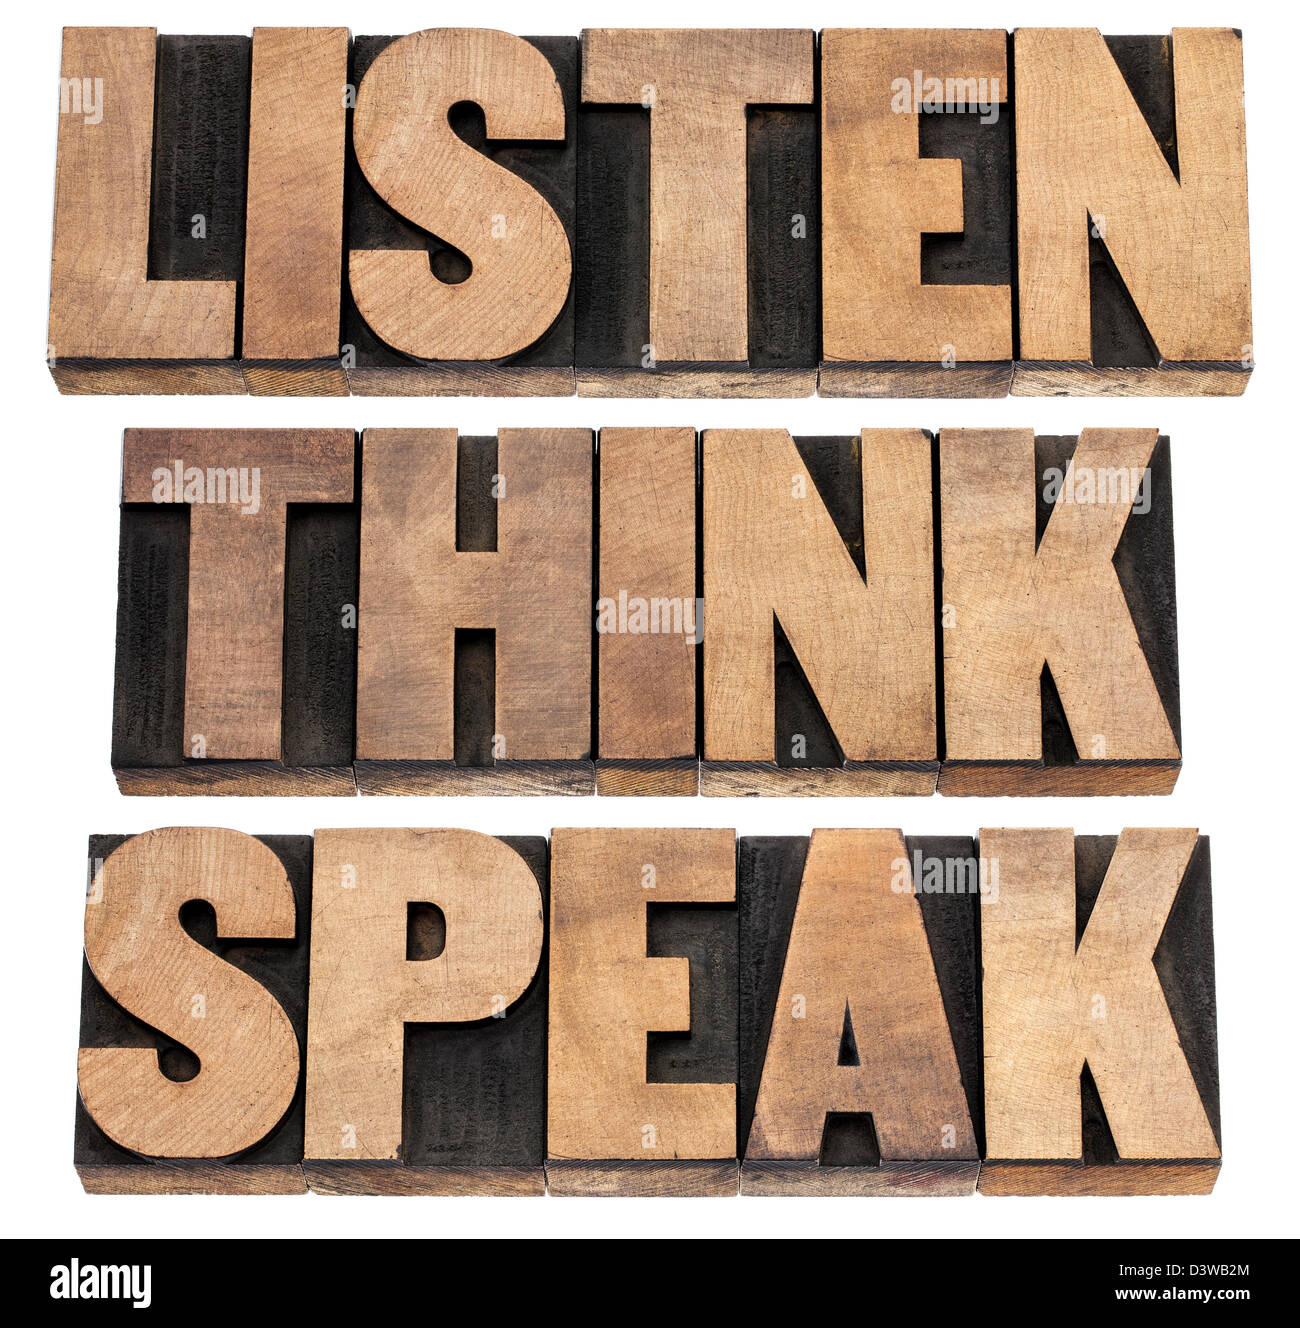 listen, think, speak - communication concept - isolated text in vintage letterpress wood type printing blocks - Stock Image